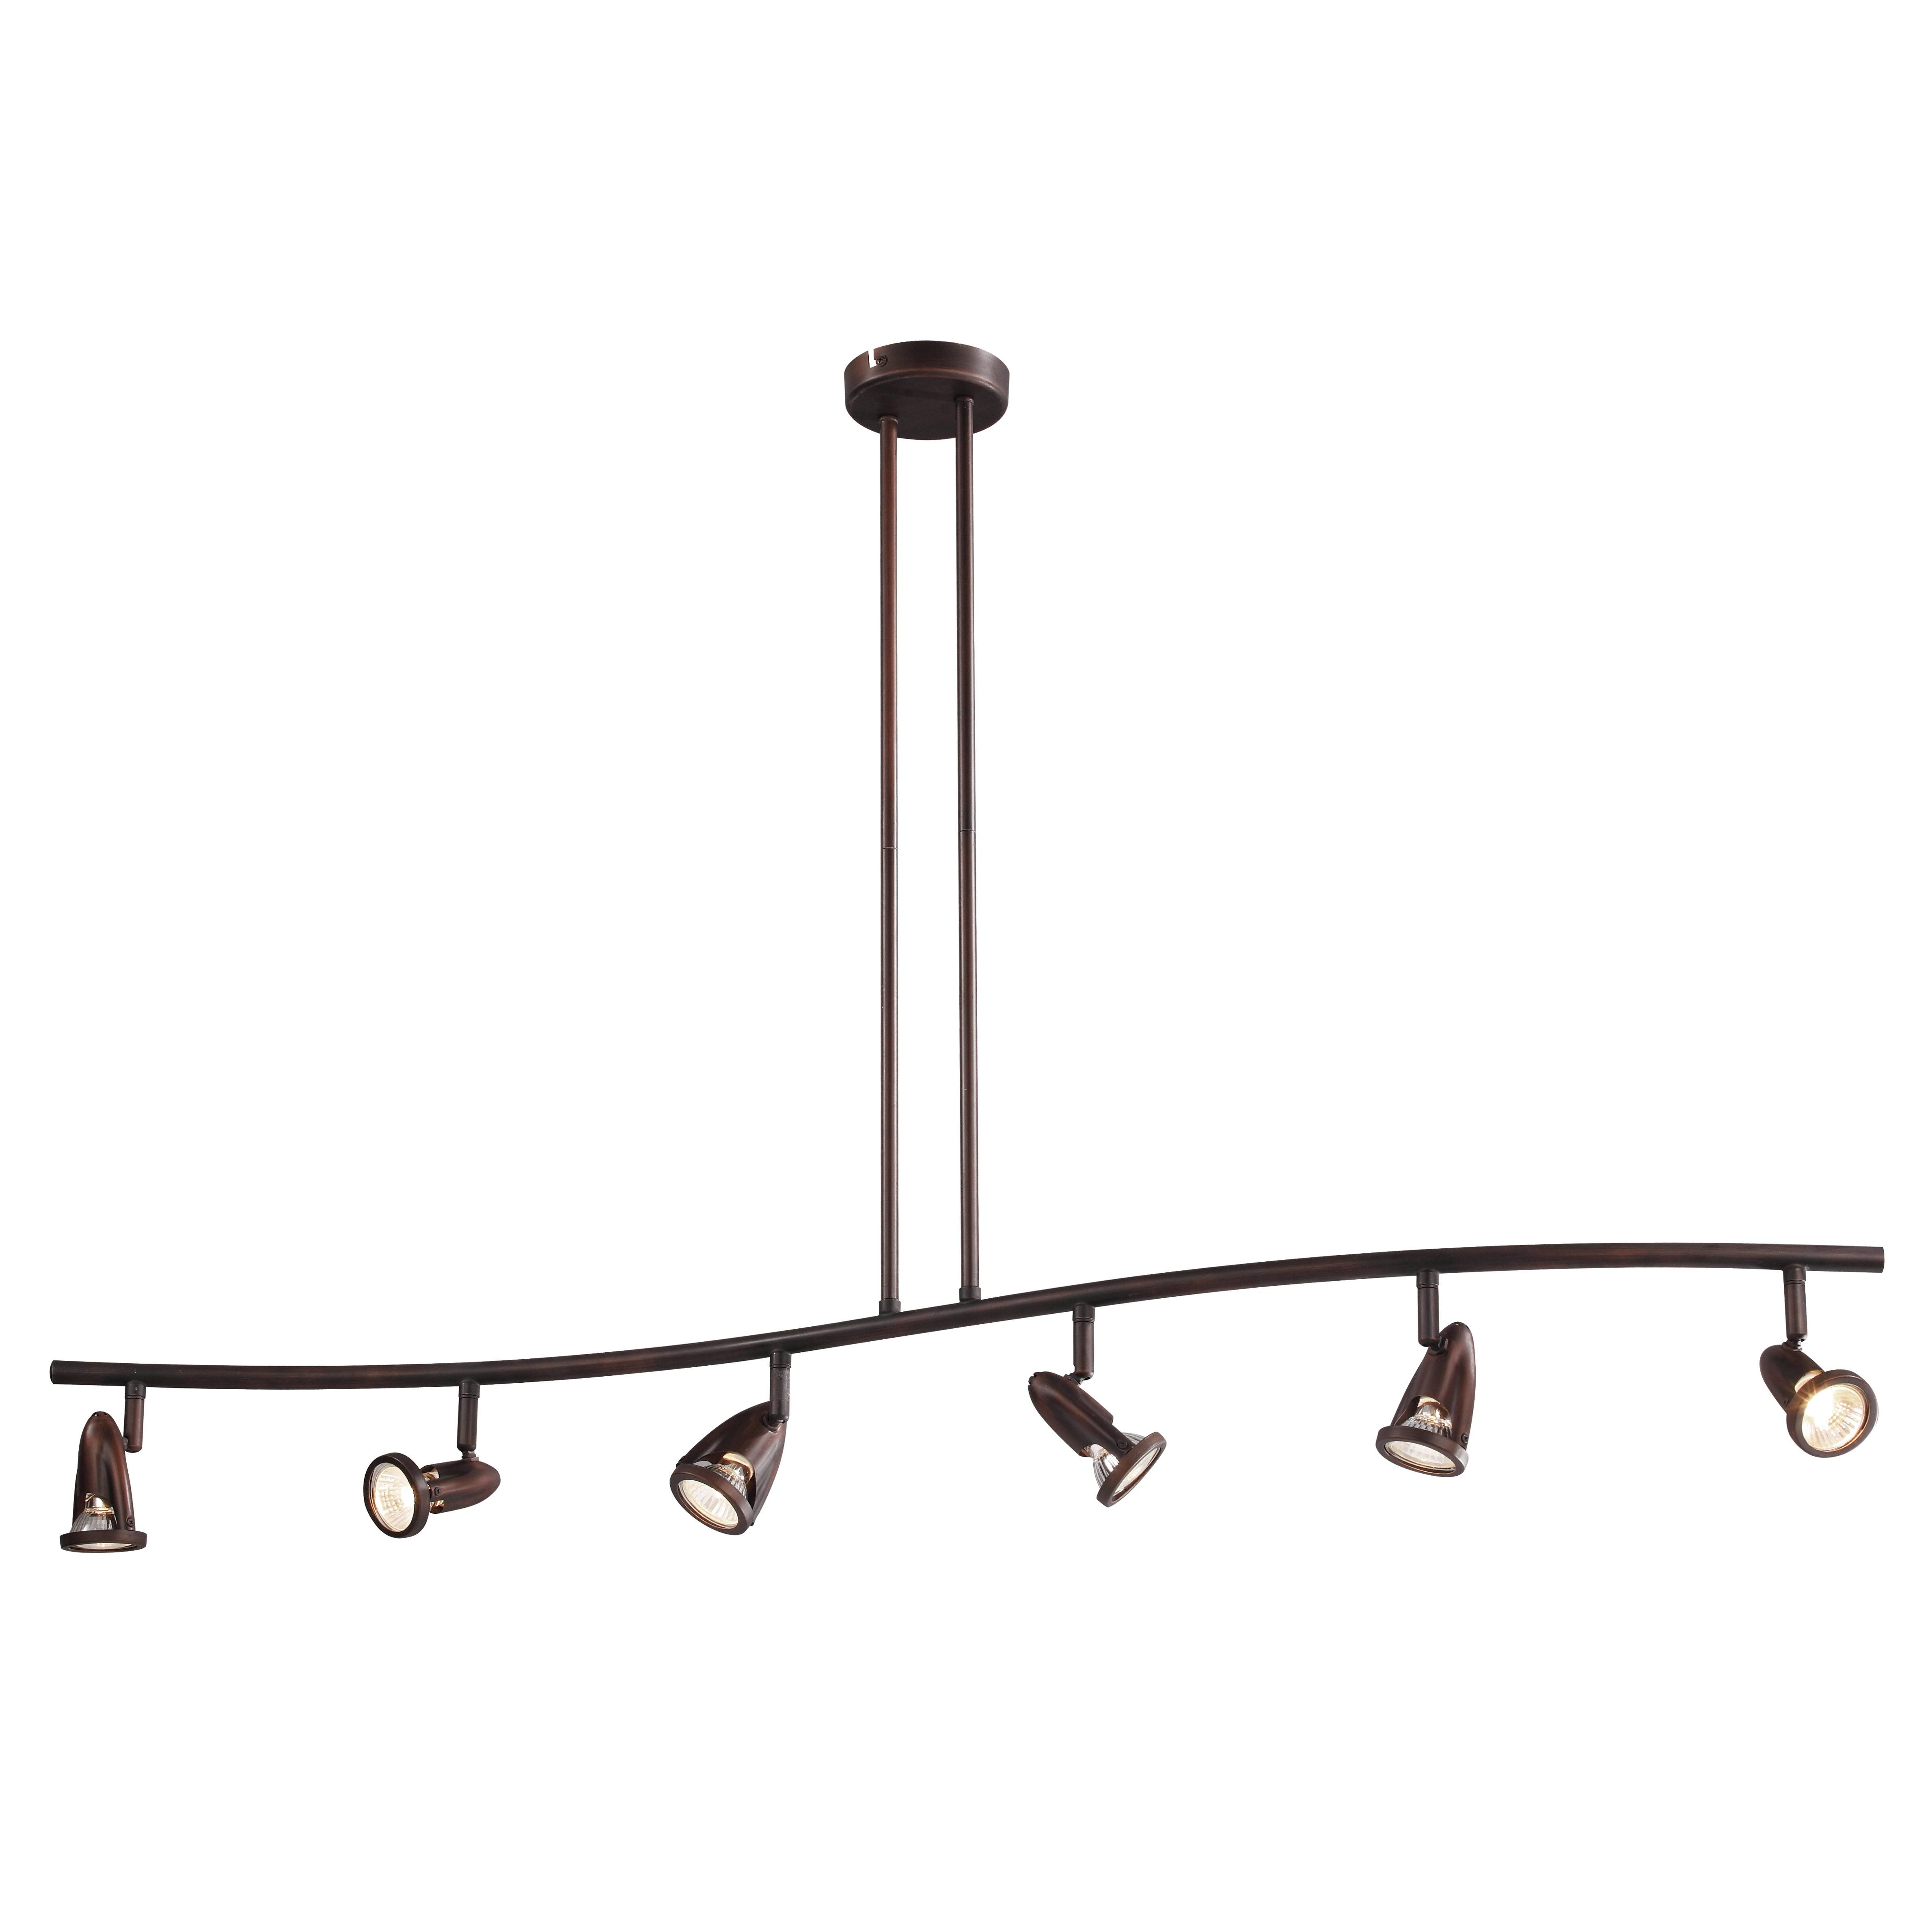 Stunning Offset Track Lighting 91 For Halo Track Lighting Pendants Pertaining To Halo Track Lighting Pendants (View 4 of 15)